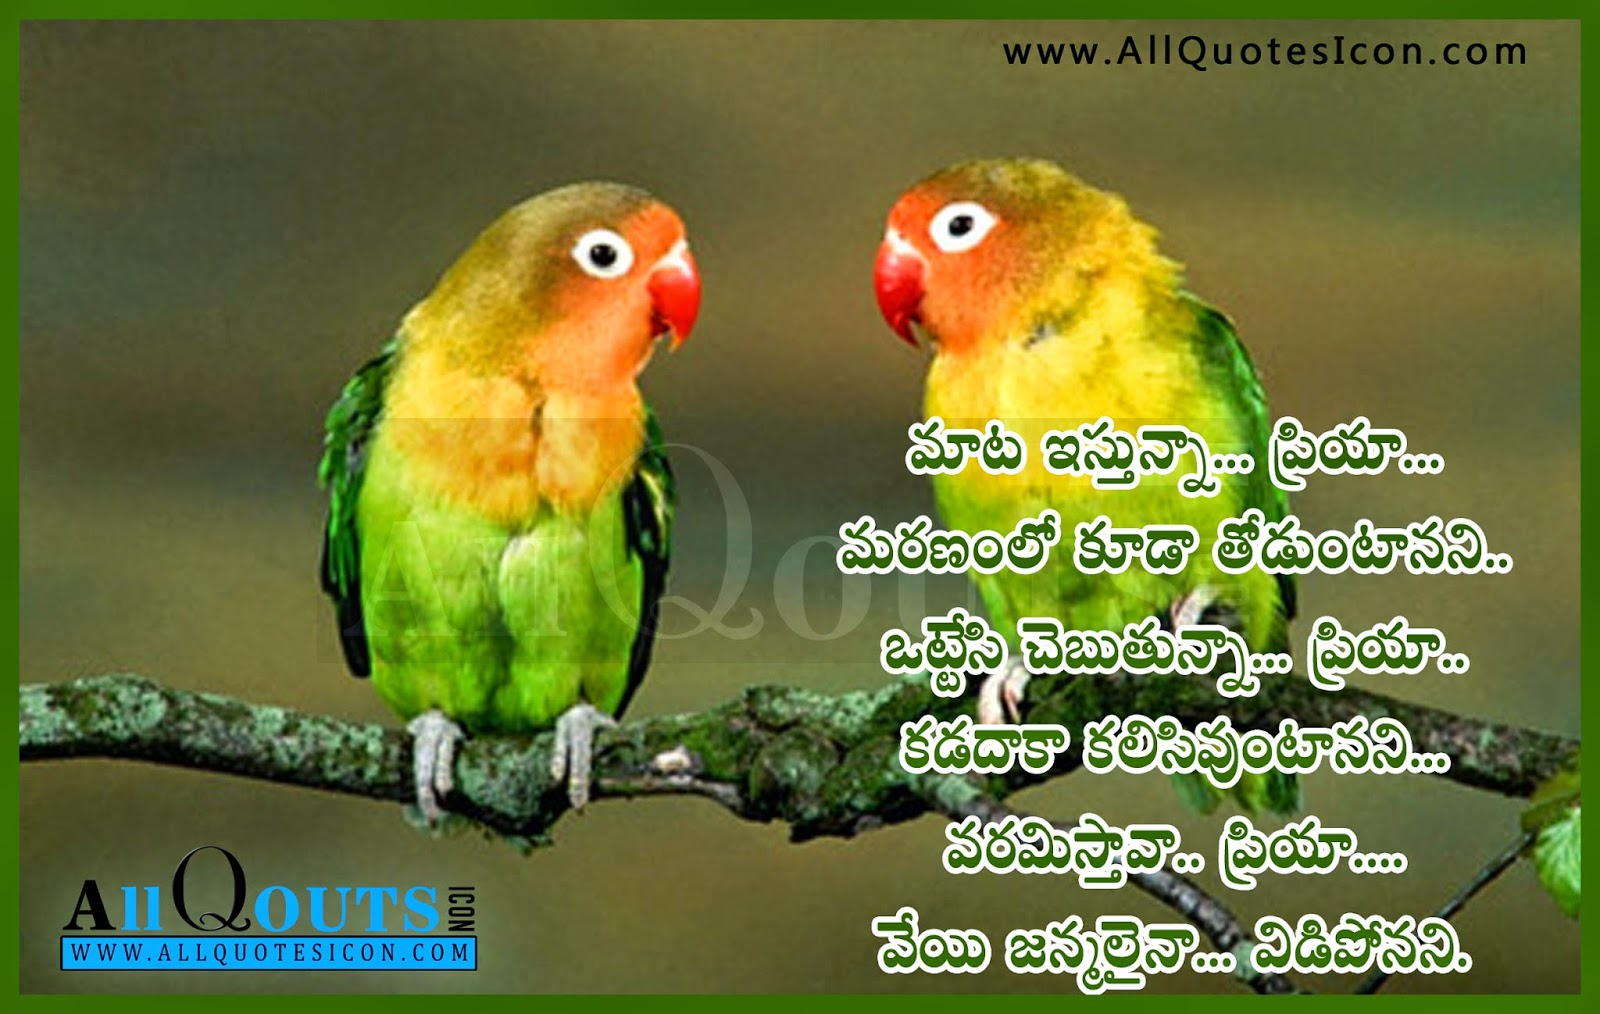 Telugu Love Quotes Glamorous Telugu Love Quotes And Images  Www.allquotesicon  Telugu